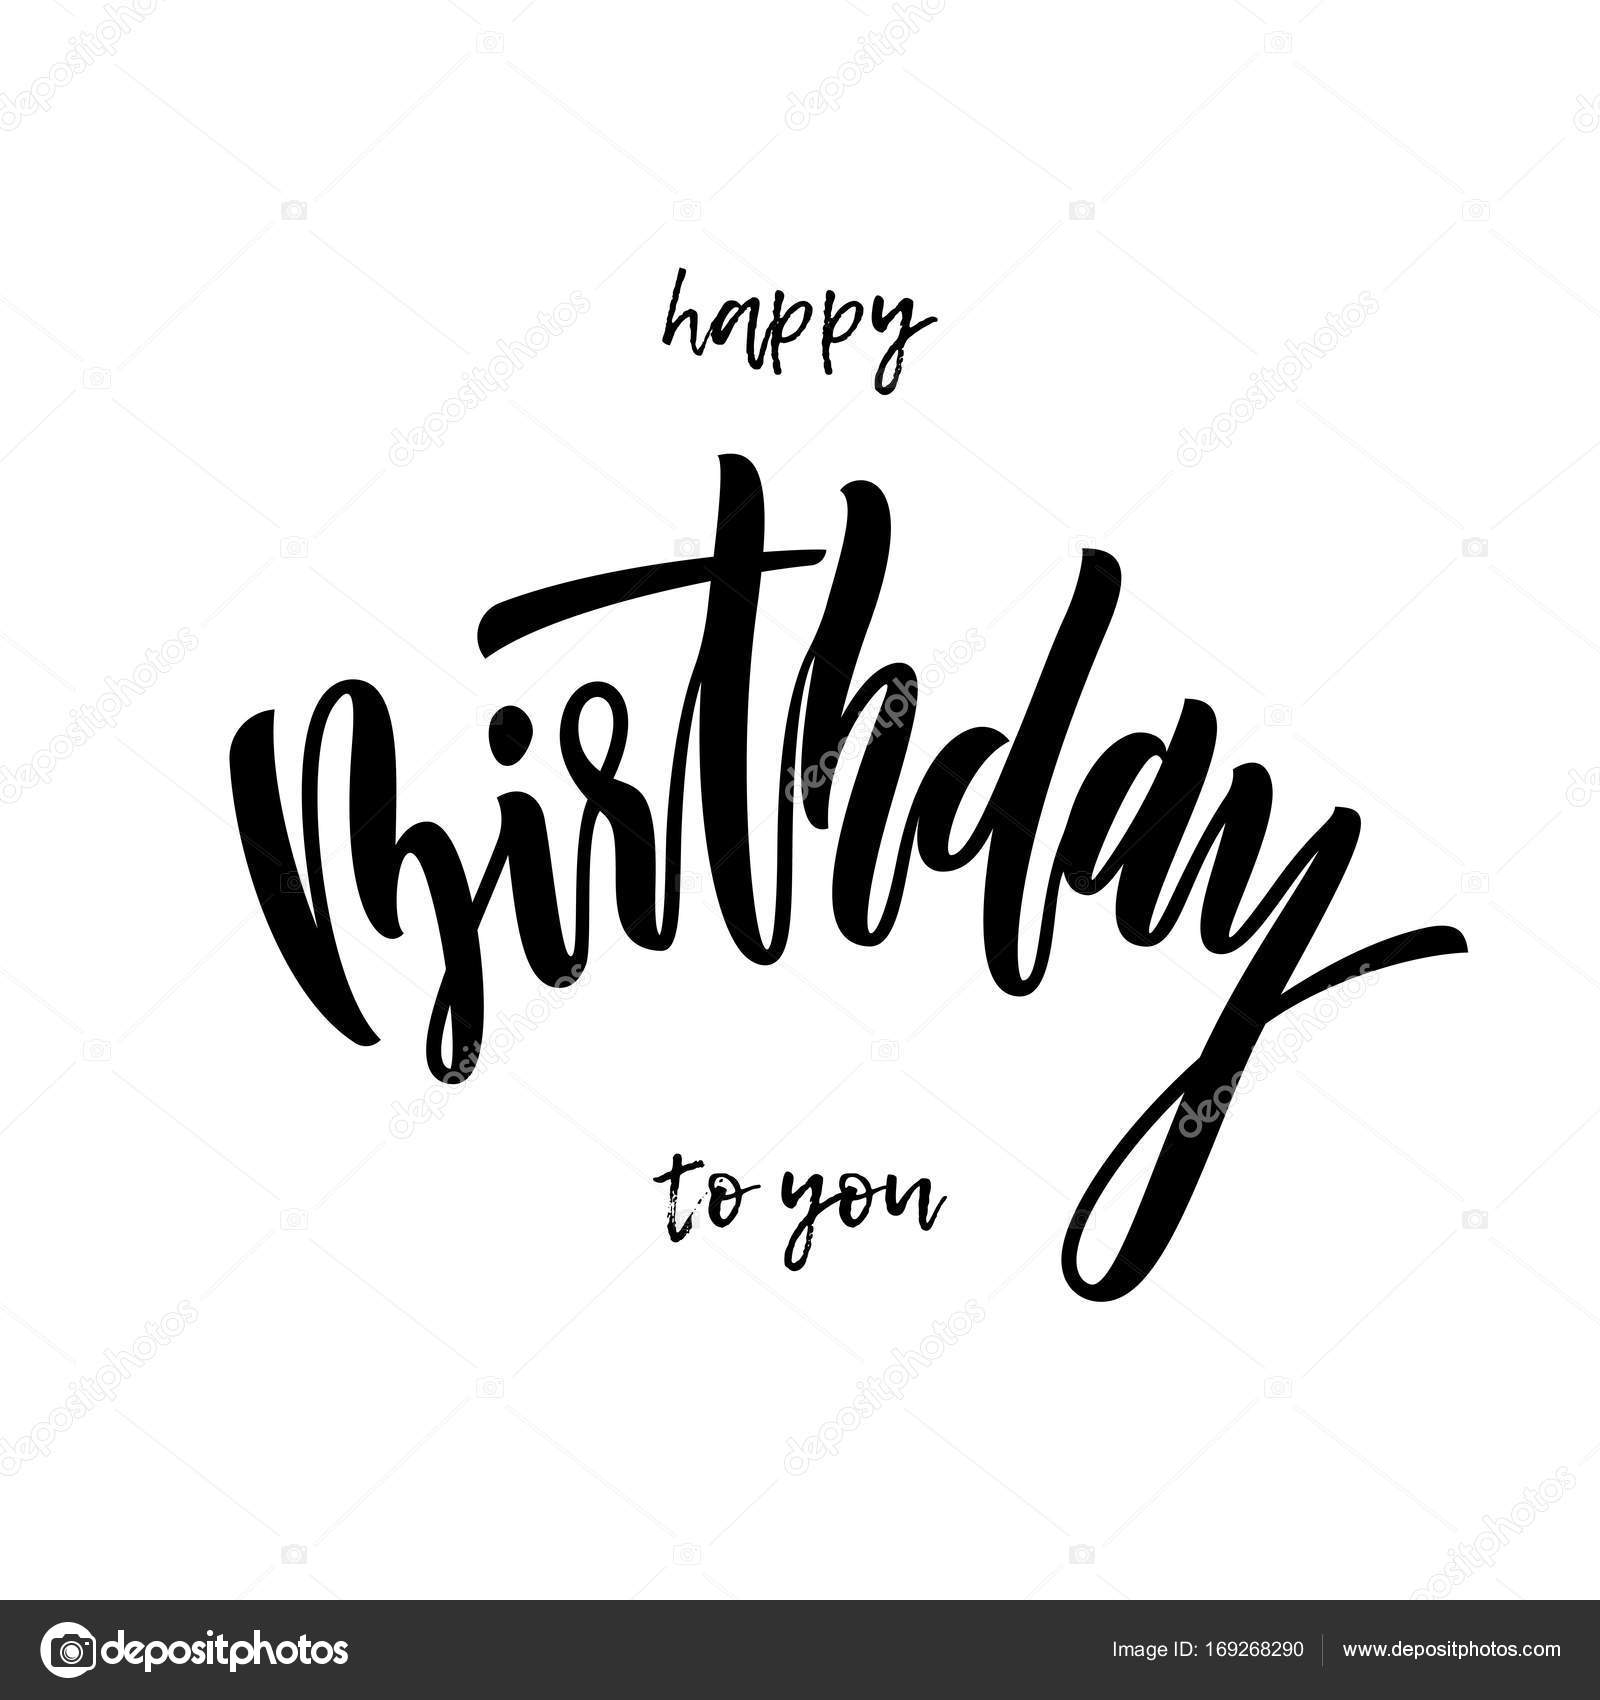 Happy birthday to you greeting card calligraphy hand drawn vector happy birthday to you greeting card calligraphy hand drawn vector font lettering stock vector kristyandbryce Choice Image